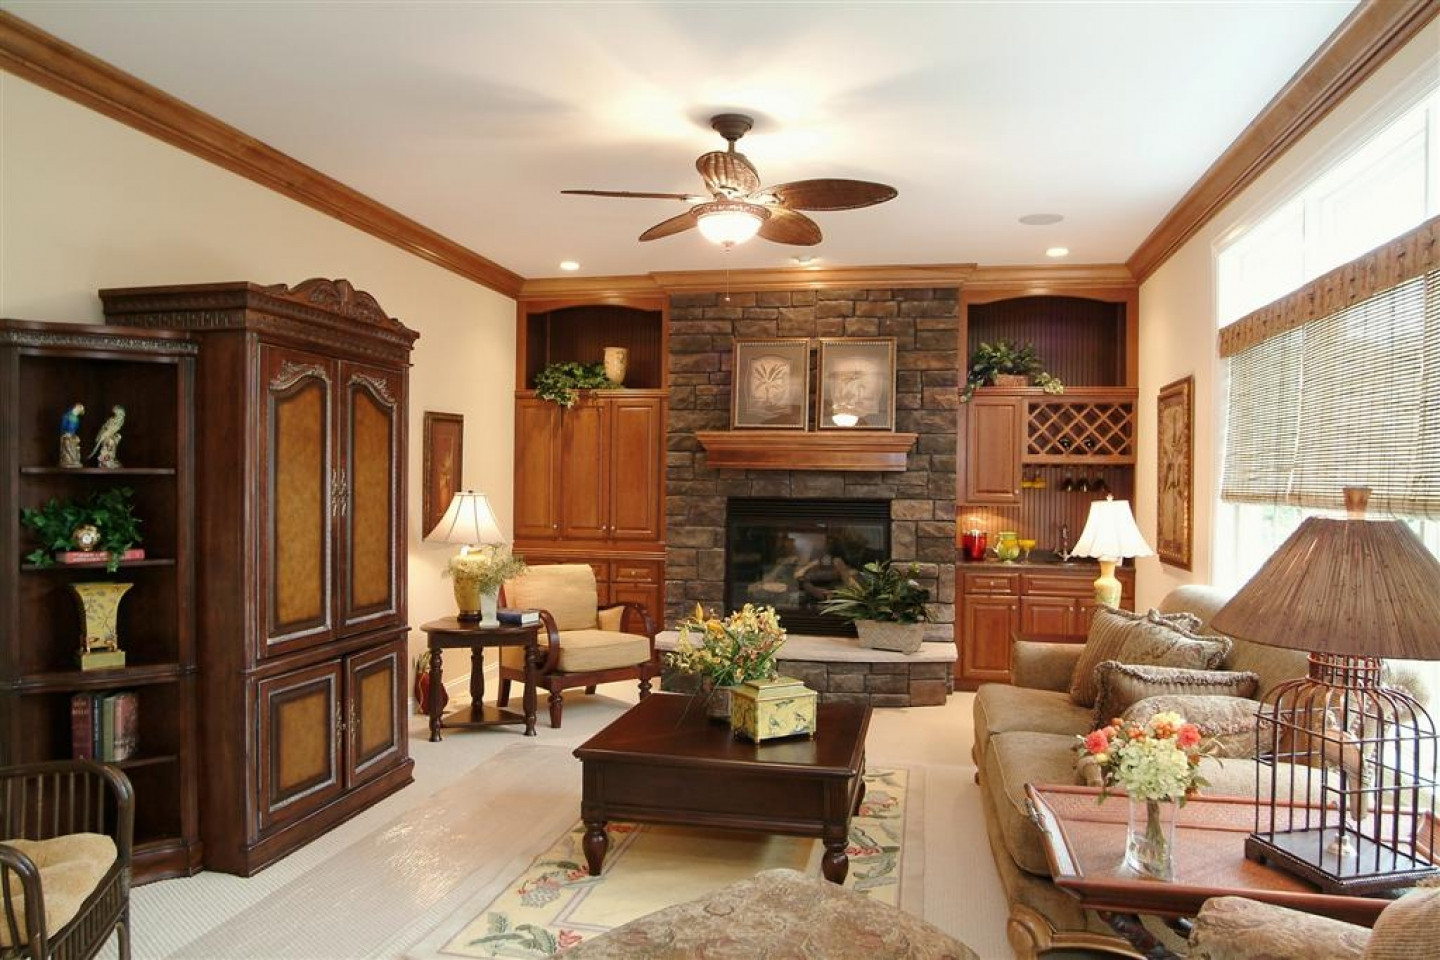 Rustic Living Room Remodel With Stone Fireplace And Classic Furniture (Image 5 of 10)